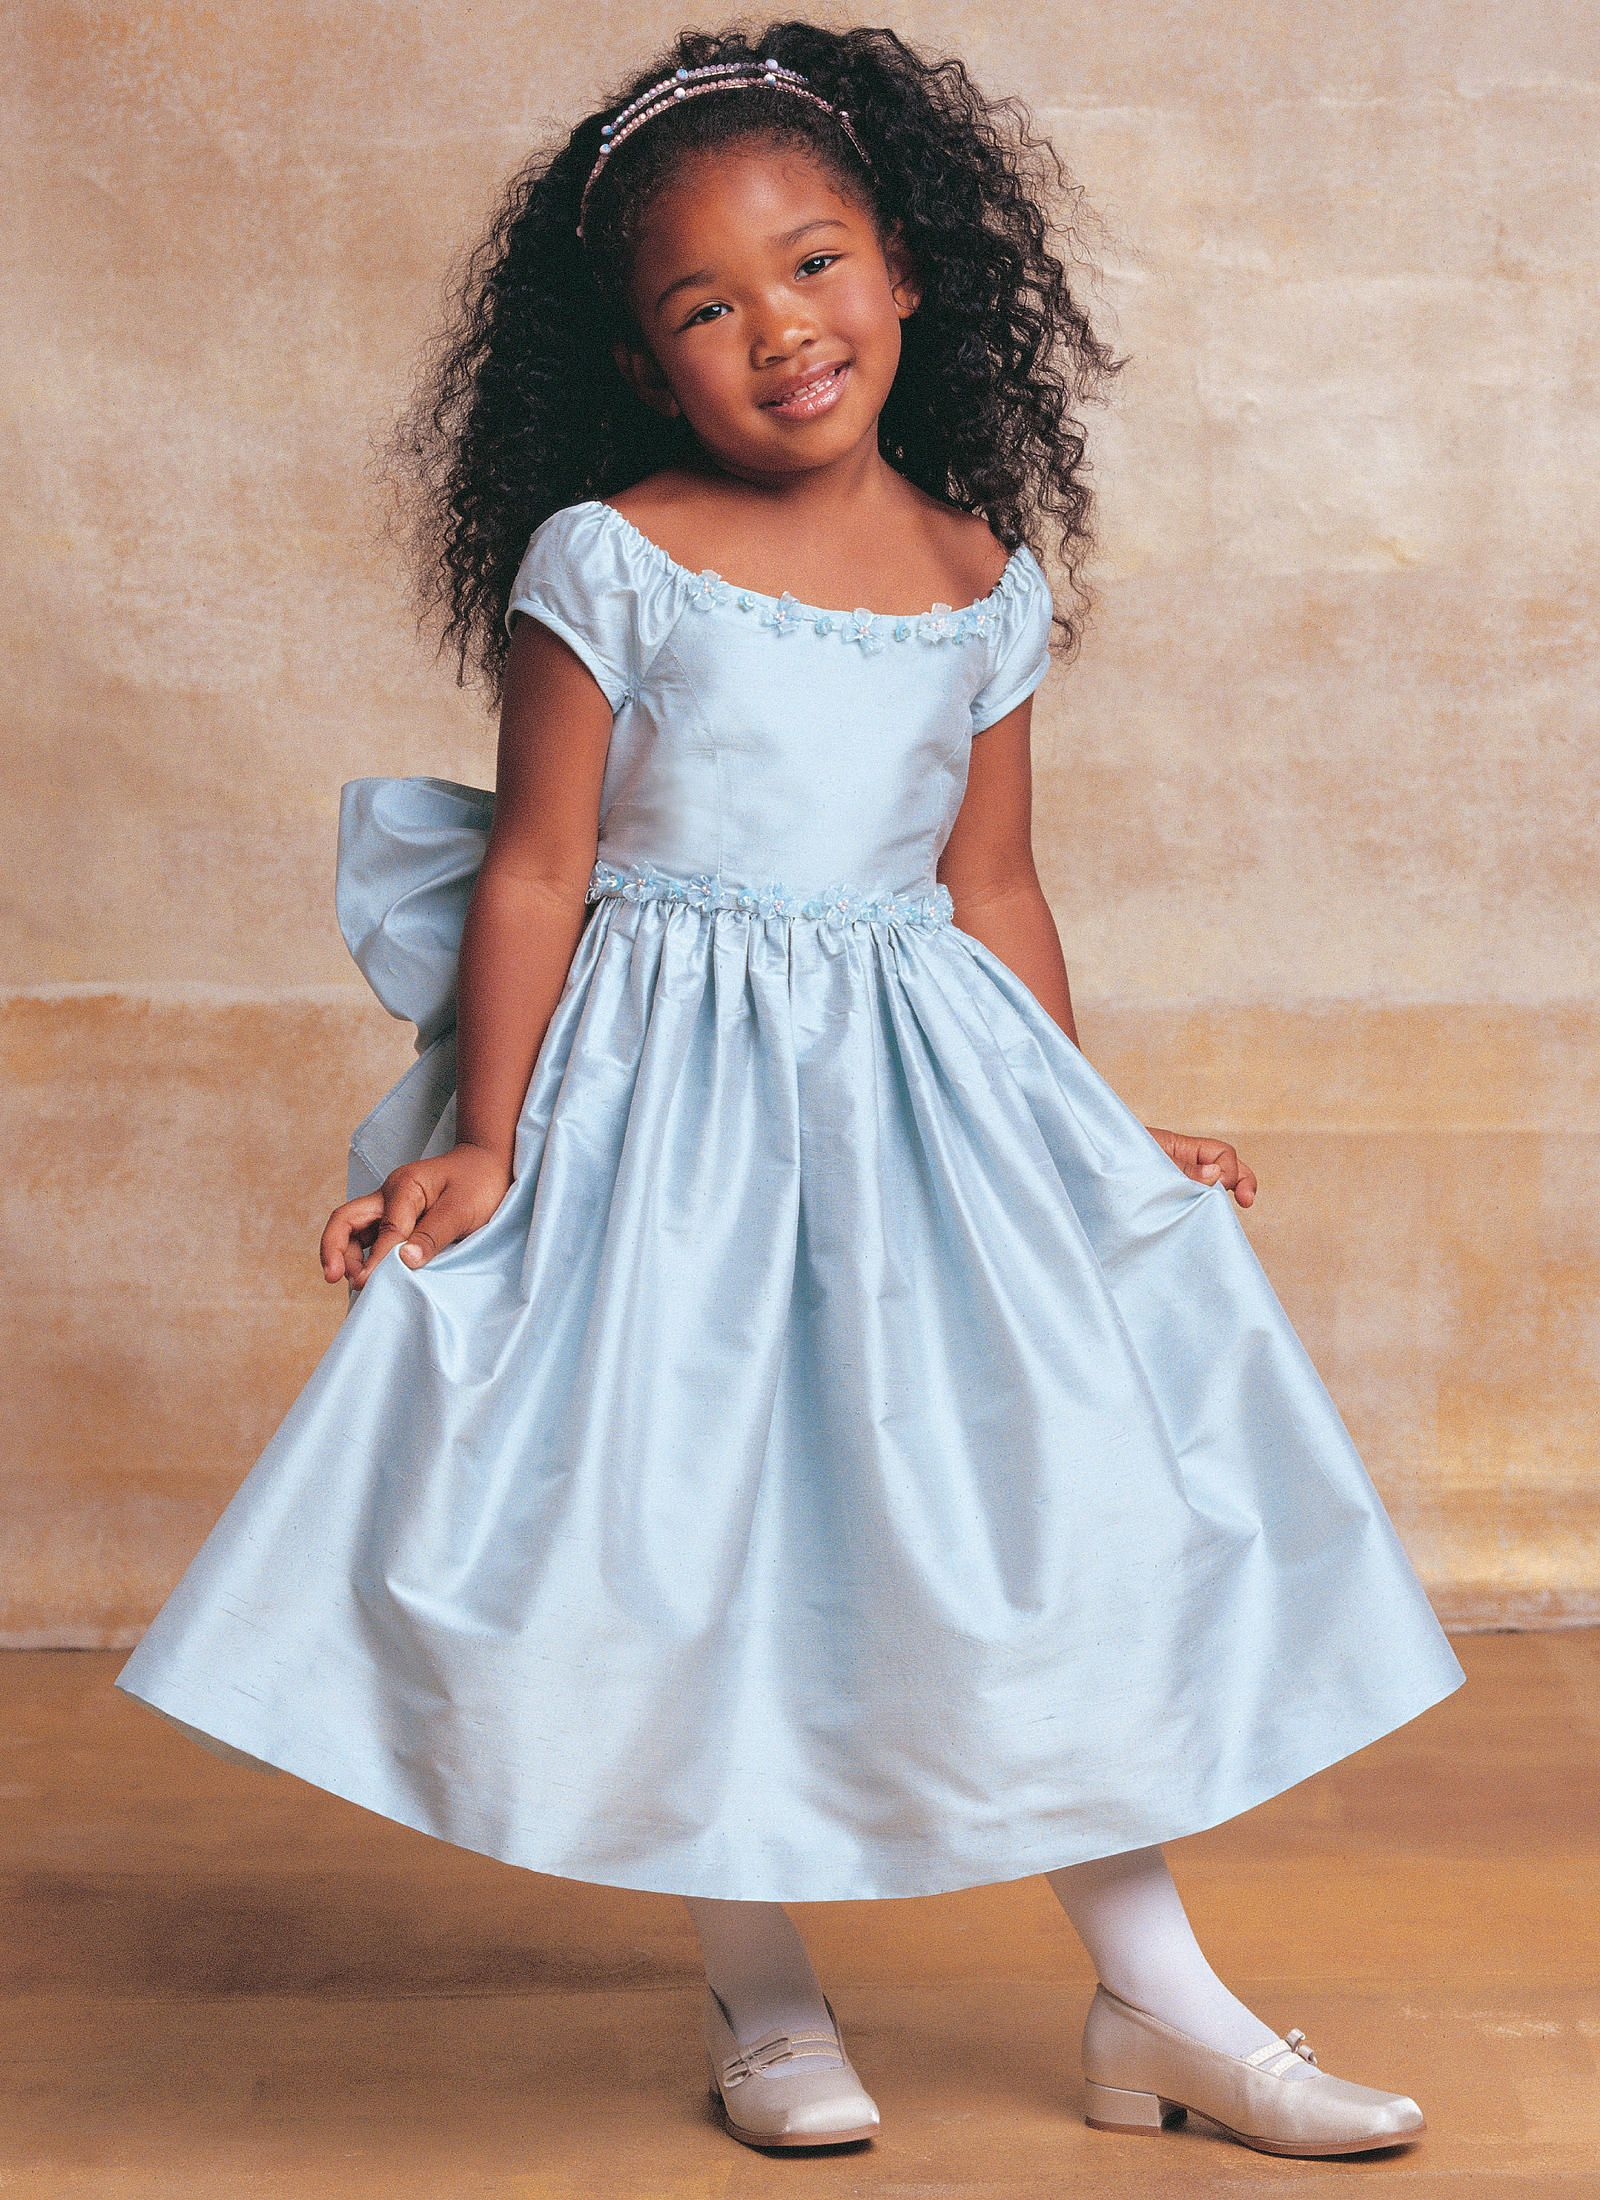 V7681 vogue patterns flower princess pinterest vogue patterns childrensgirls lined evening or lower calf length dress this has slightly gathered cap sleeves and rosette trim but the trim could be anything ombrellifo Images